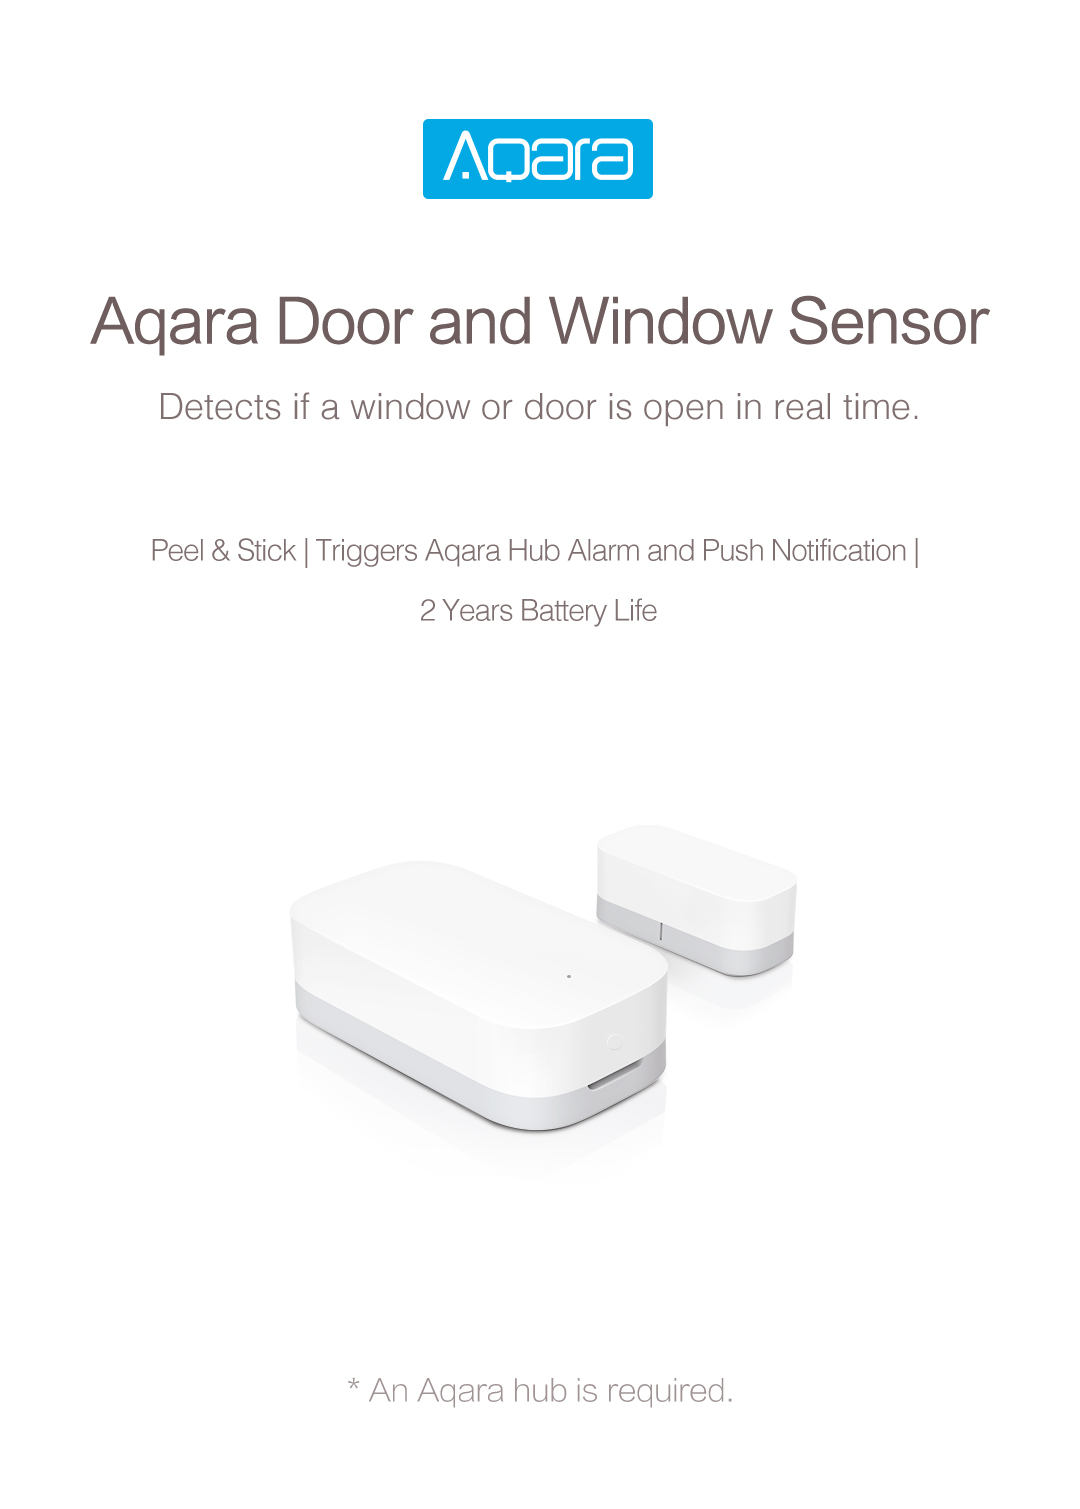 aqara homekit door/window sensor -wireless smart door/window sensor